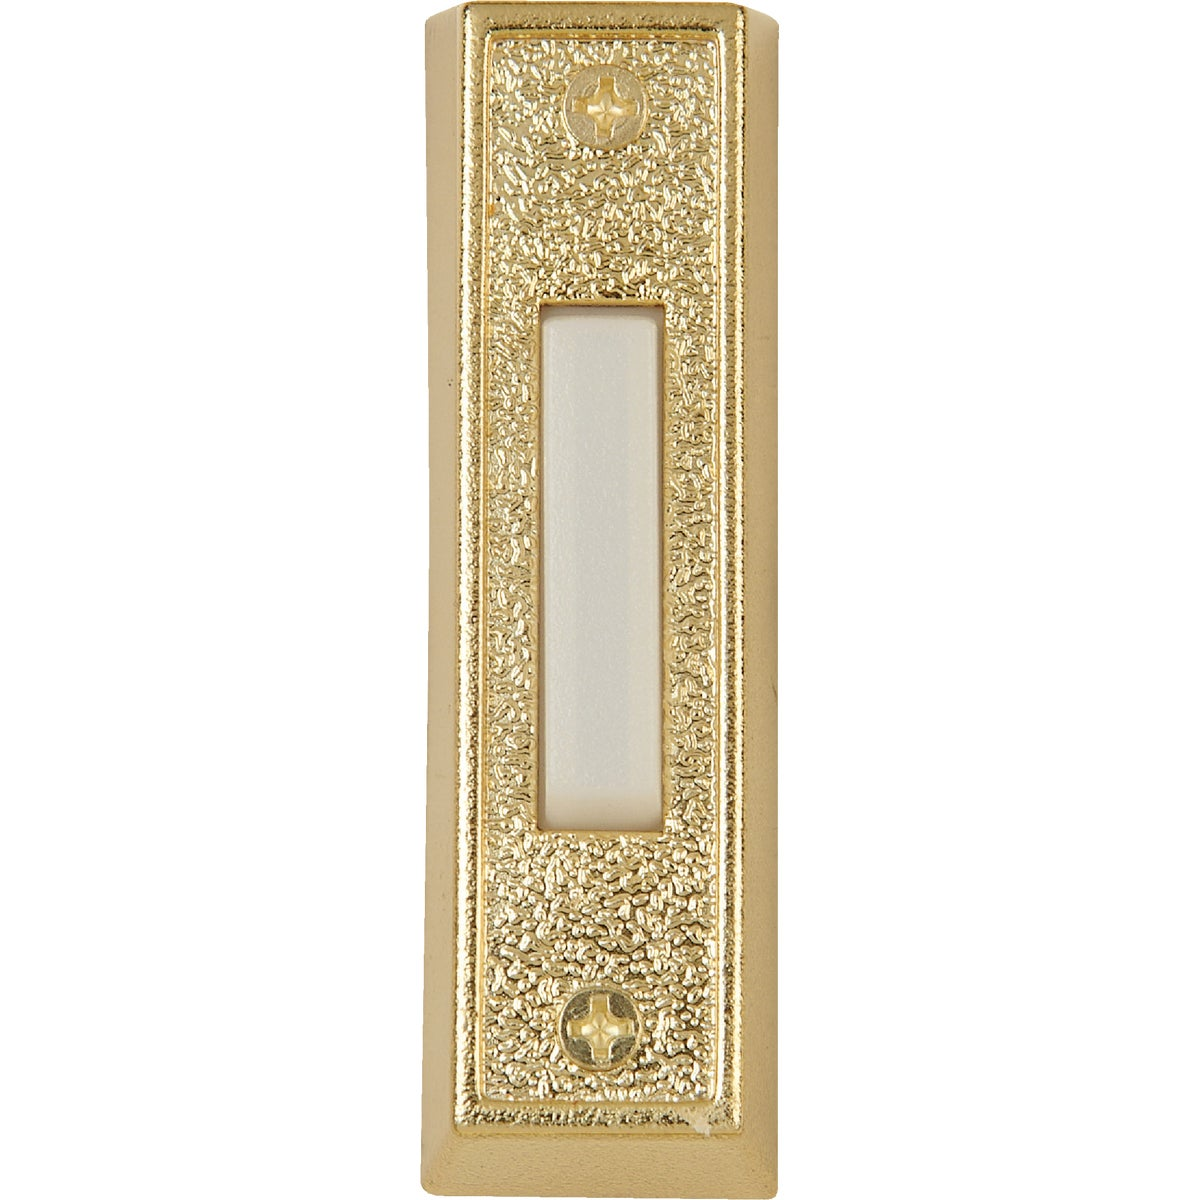 GLD LIGHTED PUSH-BUTTON